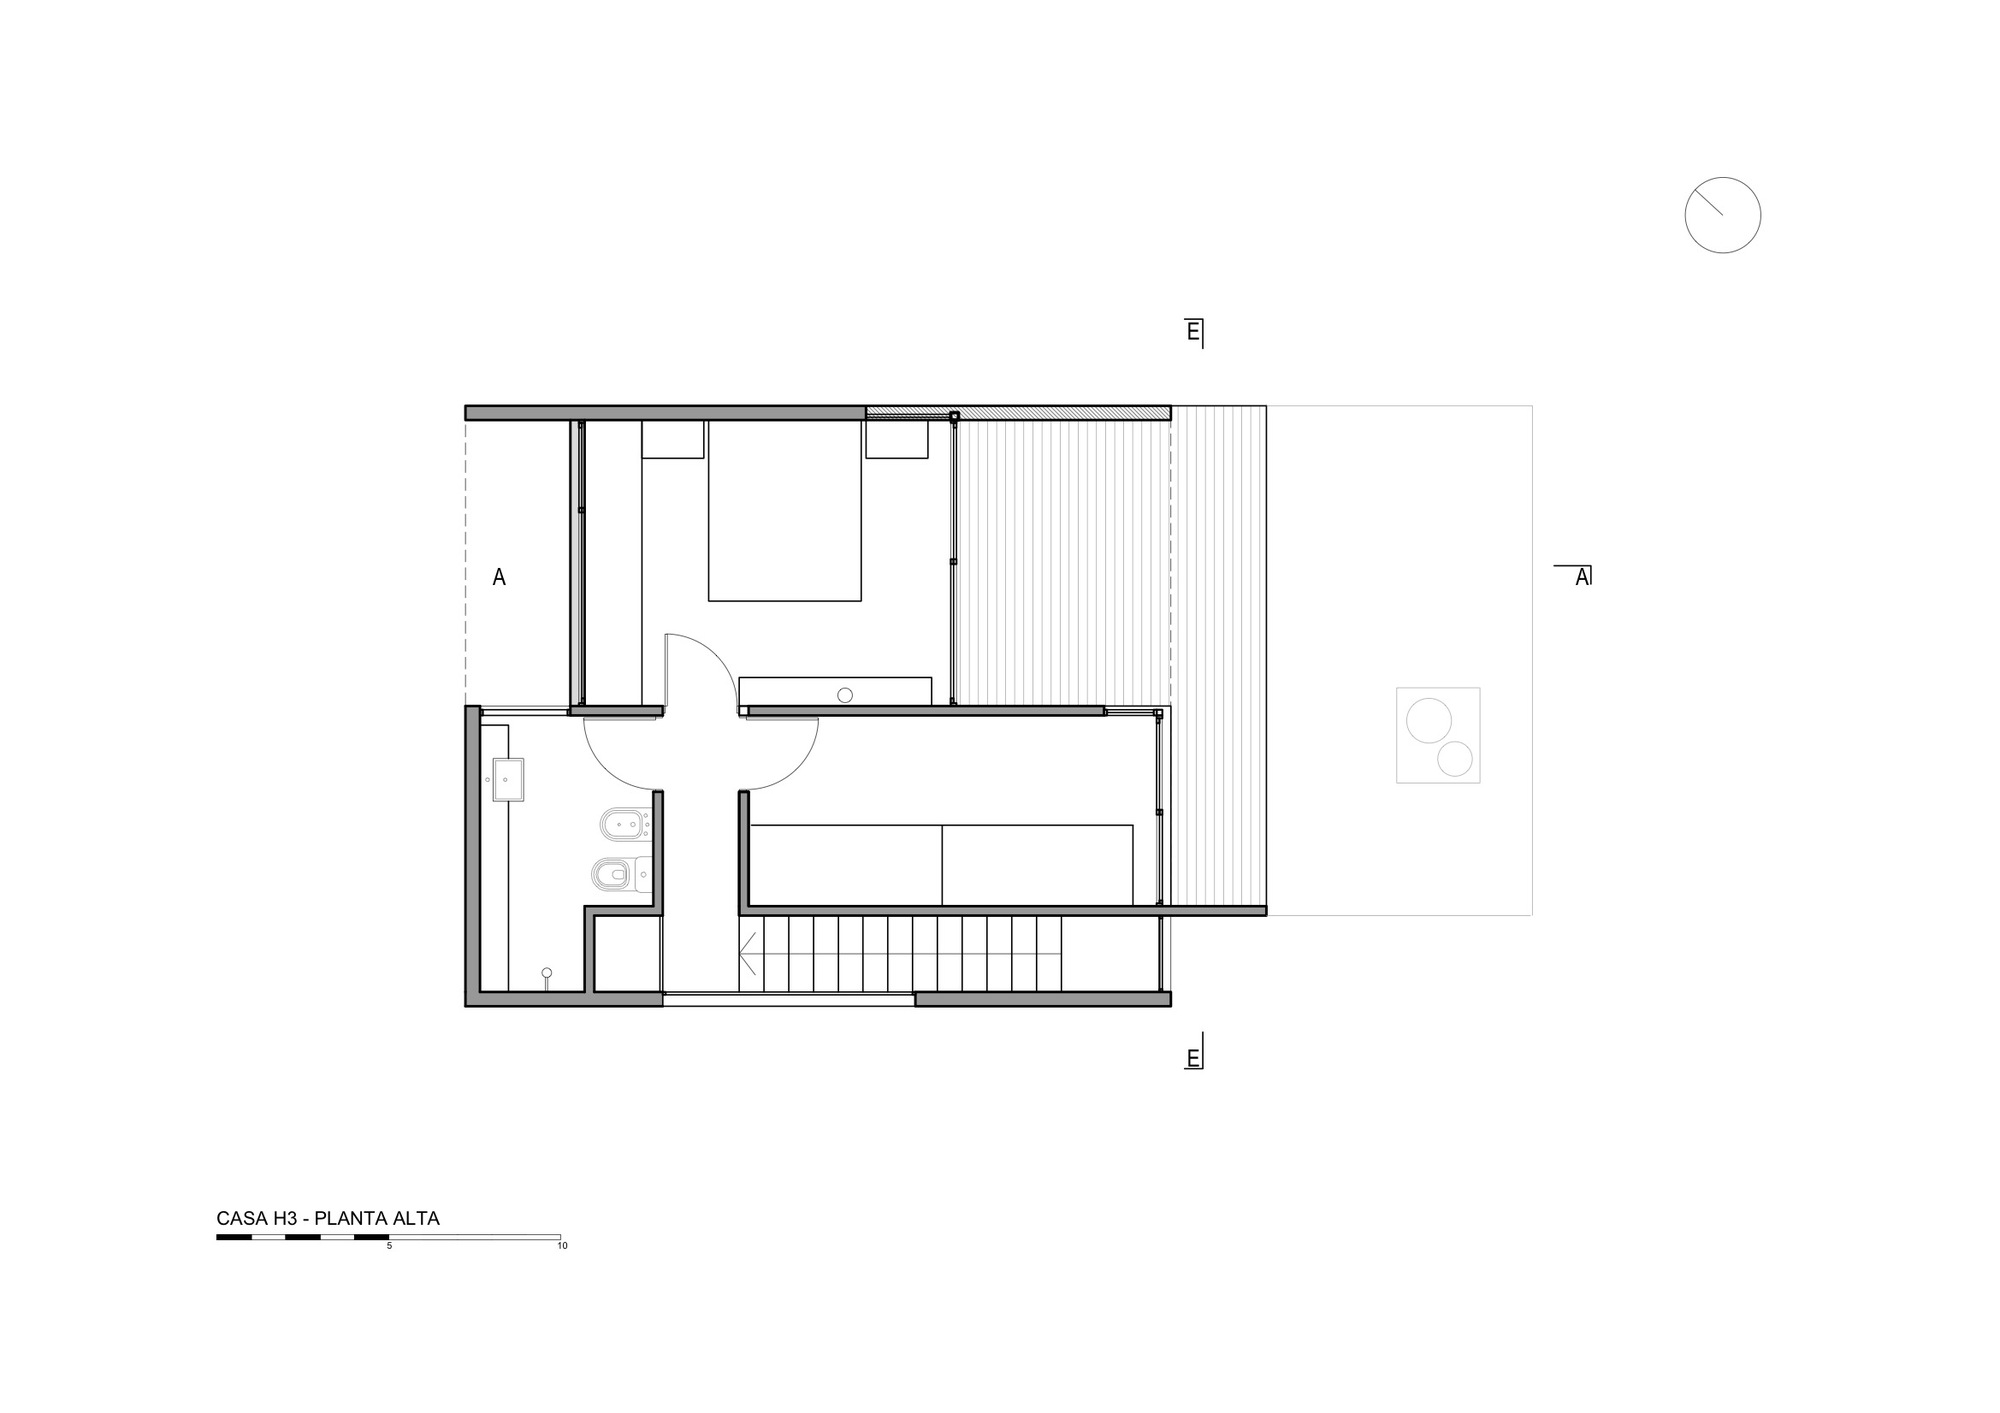 Goan House Designs And Floor Plans: Gallery Of H3 House / Luciano Kruk